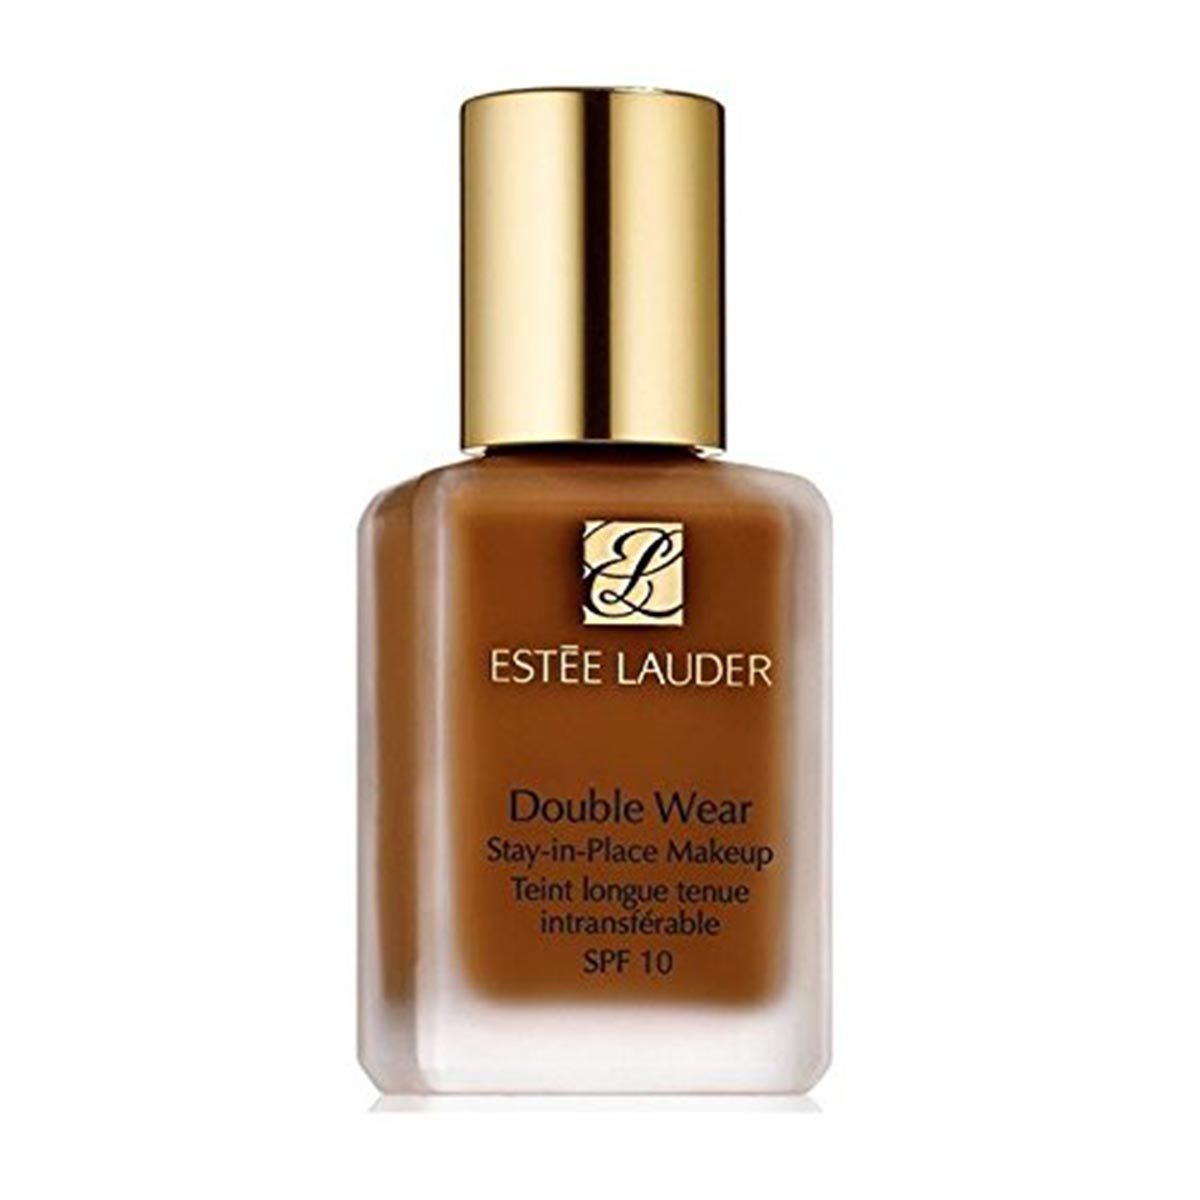 Estee lauder double wear stay in place makeup spf10 6c2 pecan